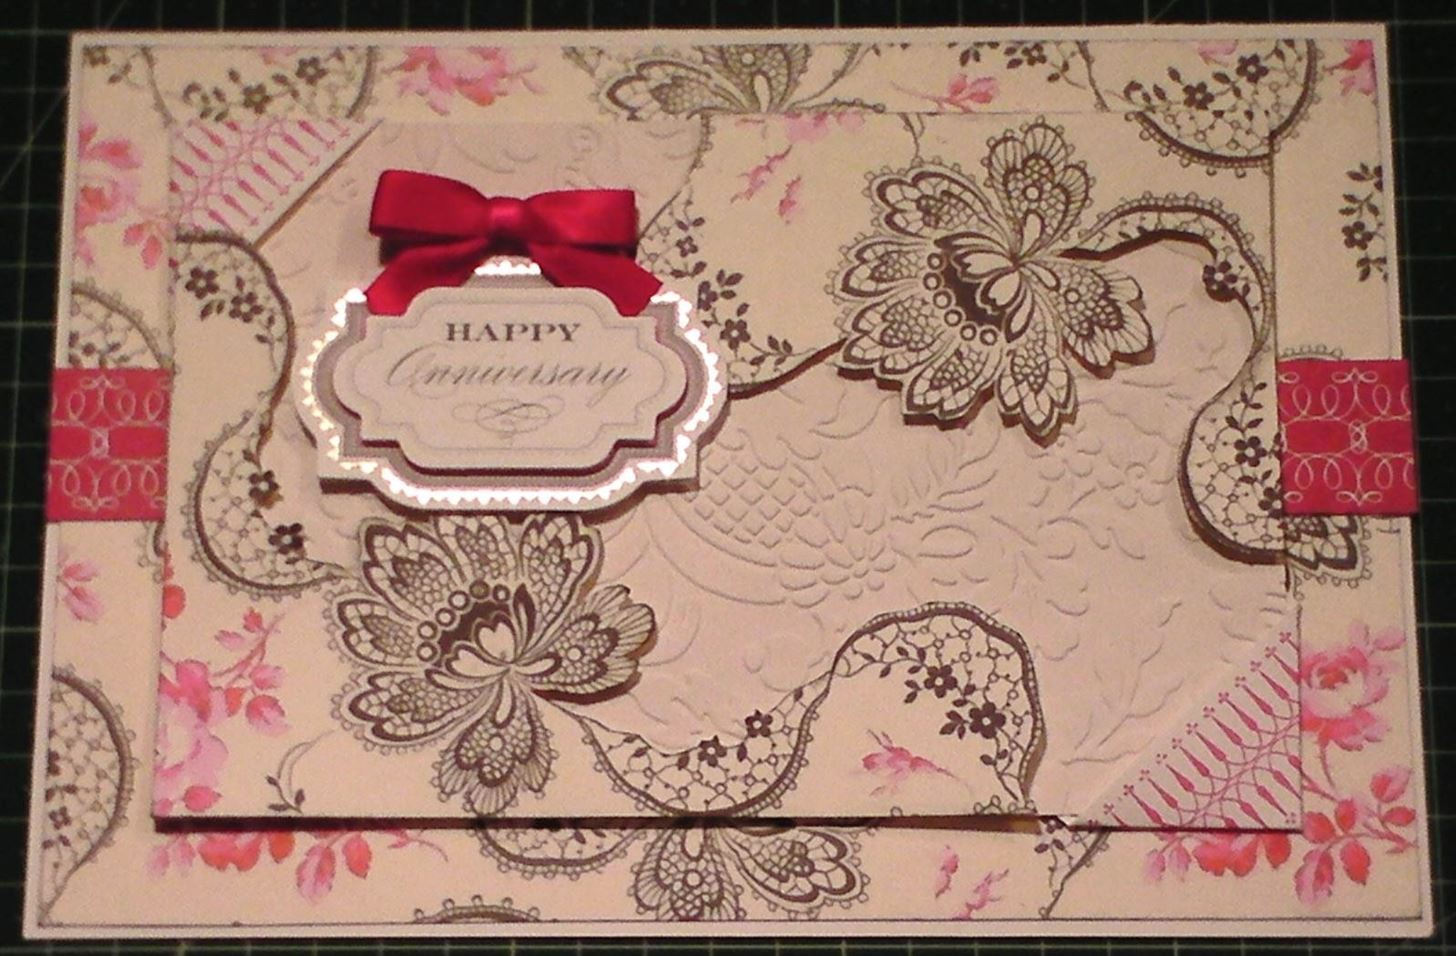 How to Make Old Floral Black & Cerise Card